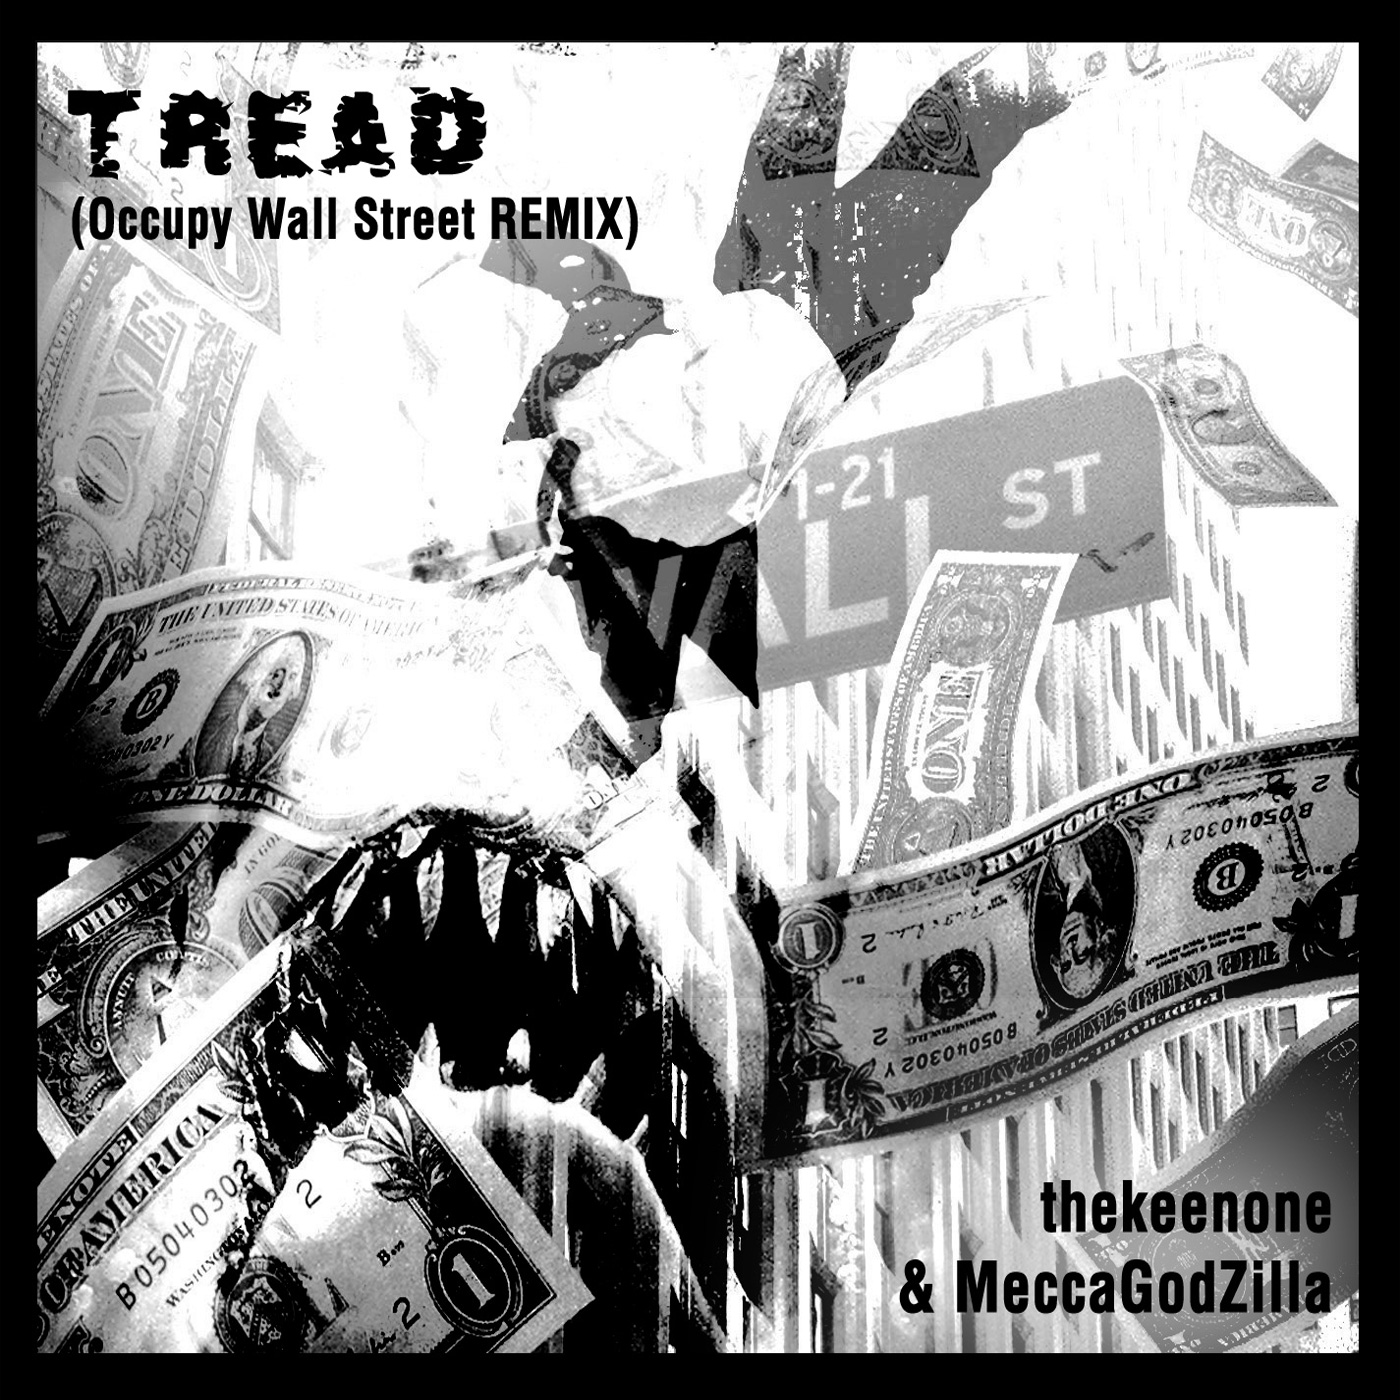 thekeenone, Keen, B Real, Eric Bobo, Hip Hop, East Coast, West Coast, Tread, Remix, MeccaGodZilla, Long Island, Producer, MC, NY, New York, Tokyo, New Music